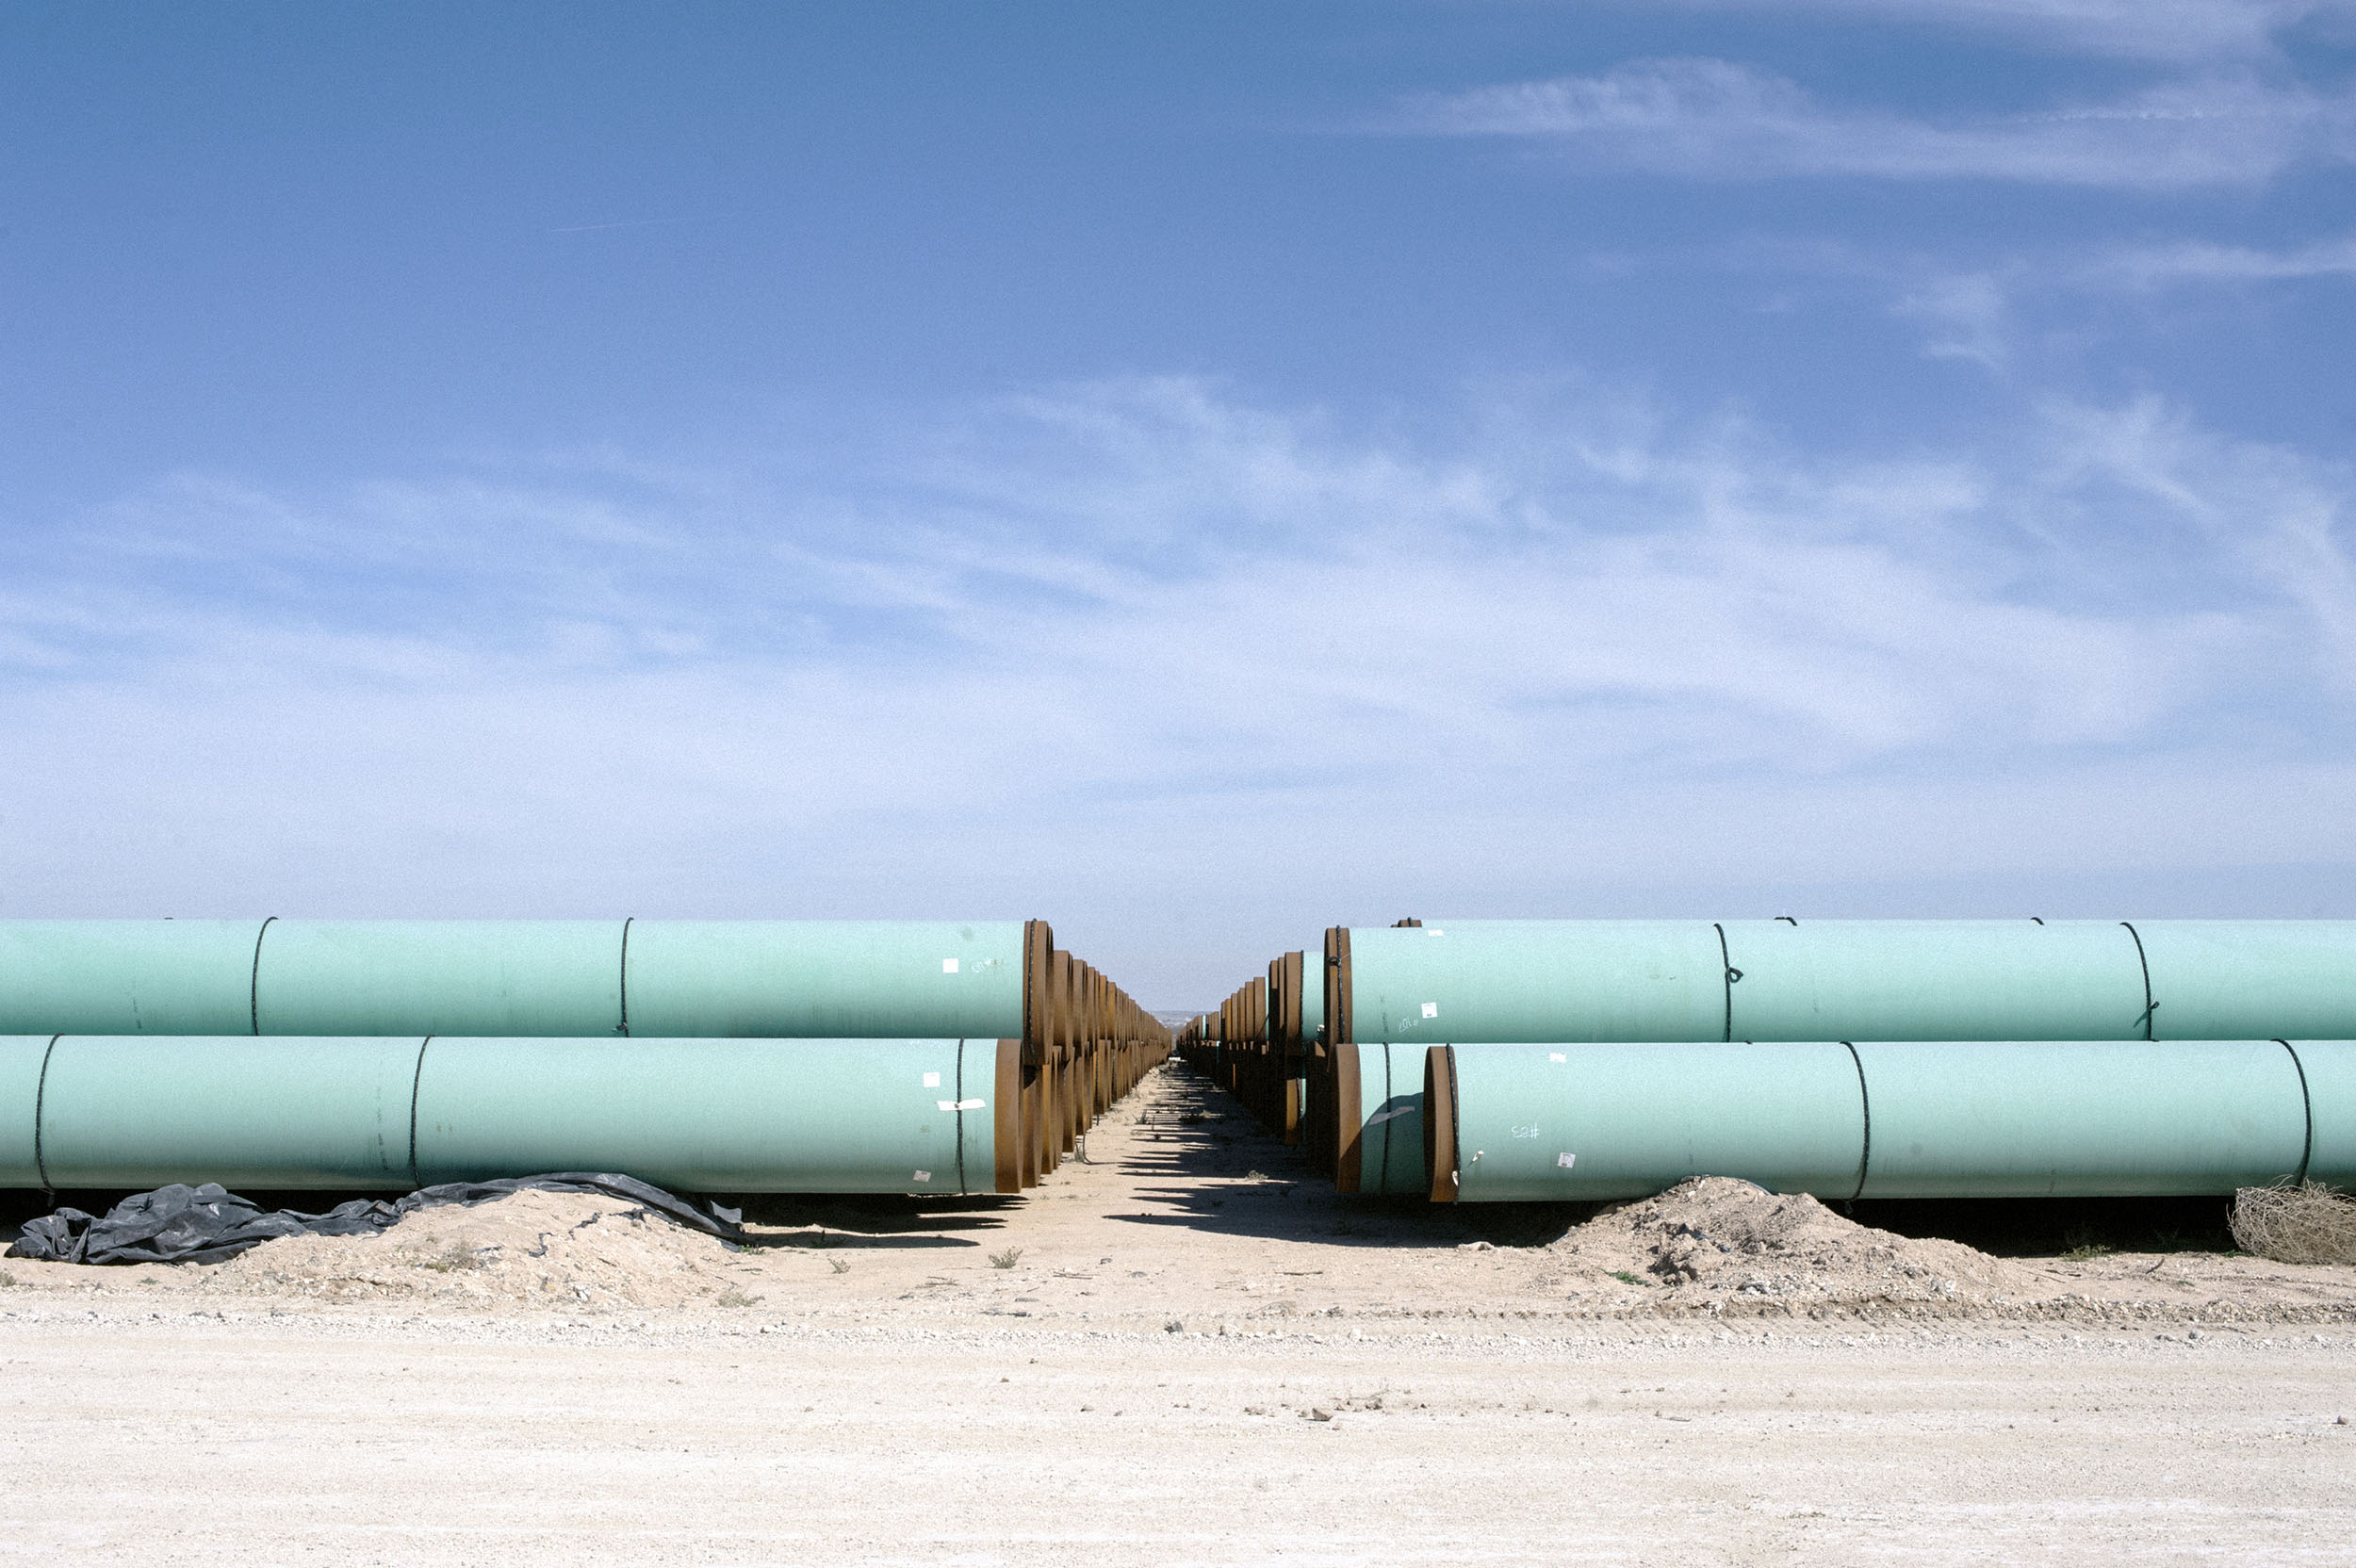 42 inch gas pipe stacked at Energy Transfer Partners' storage yard in Fort Stockton, Texas.